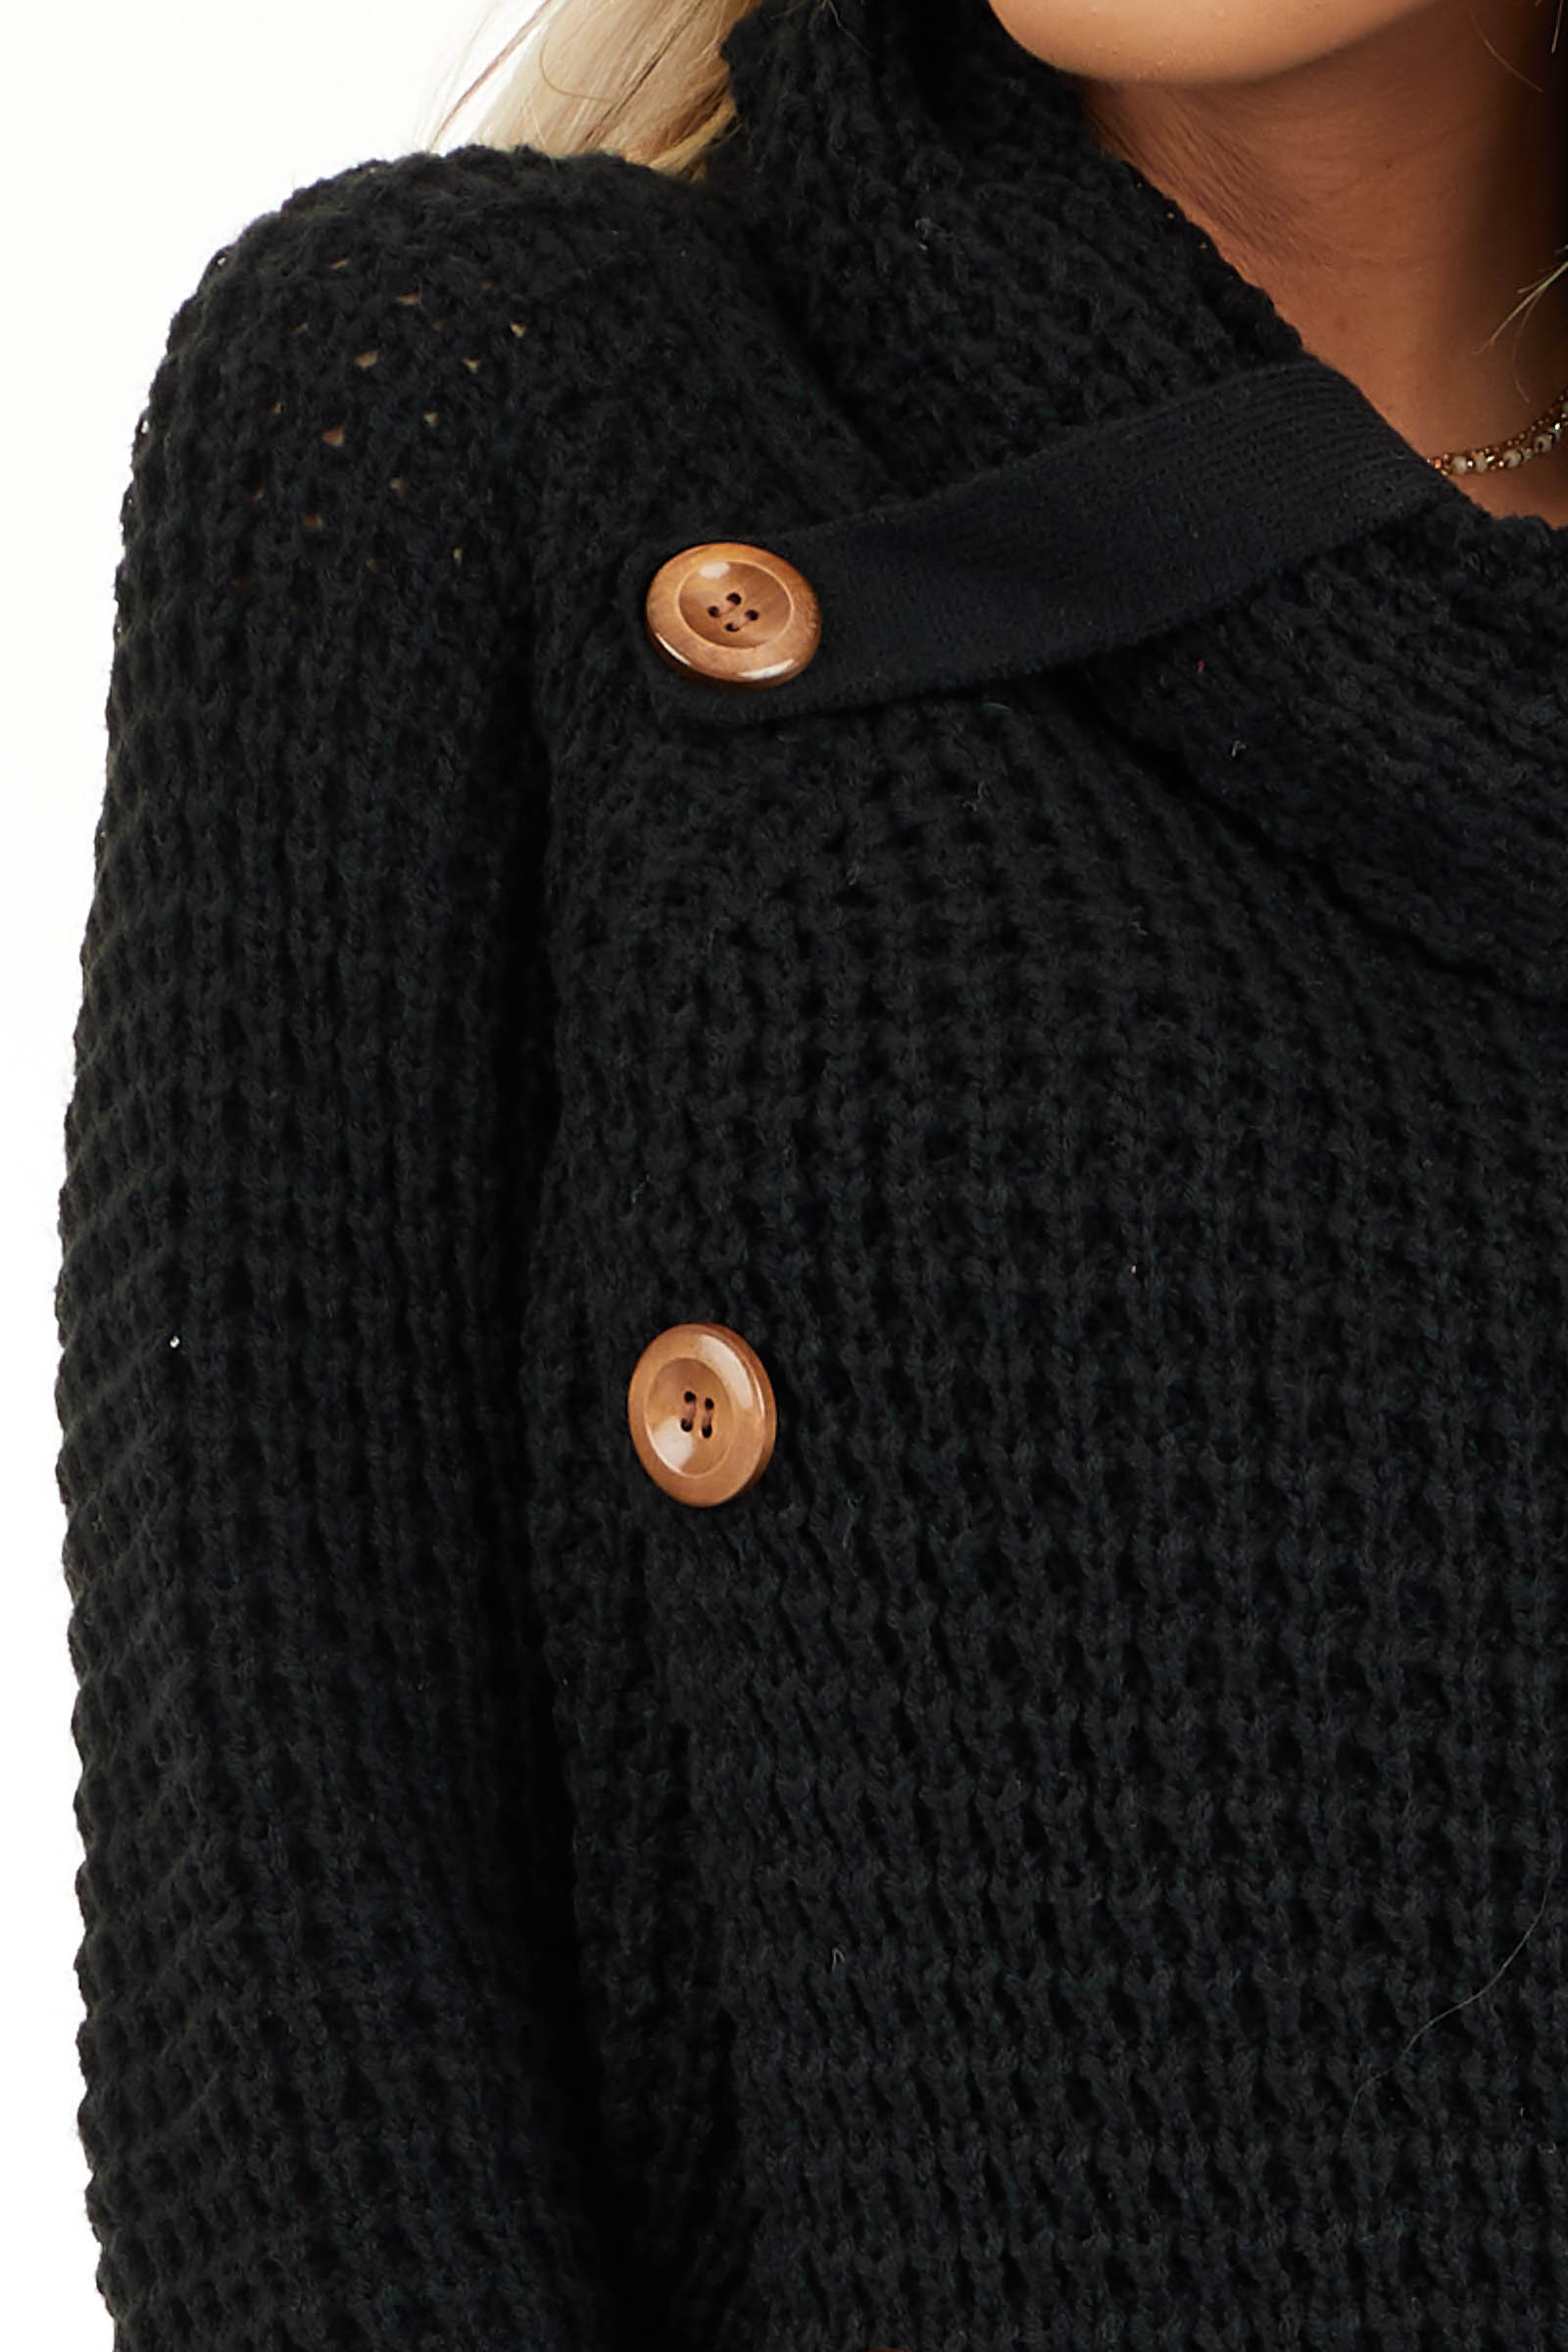 Black Chunky Waffle Knit Turtleneck Sweater with Buttons detail